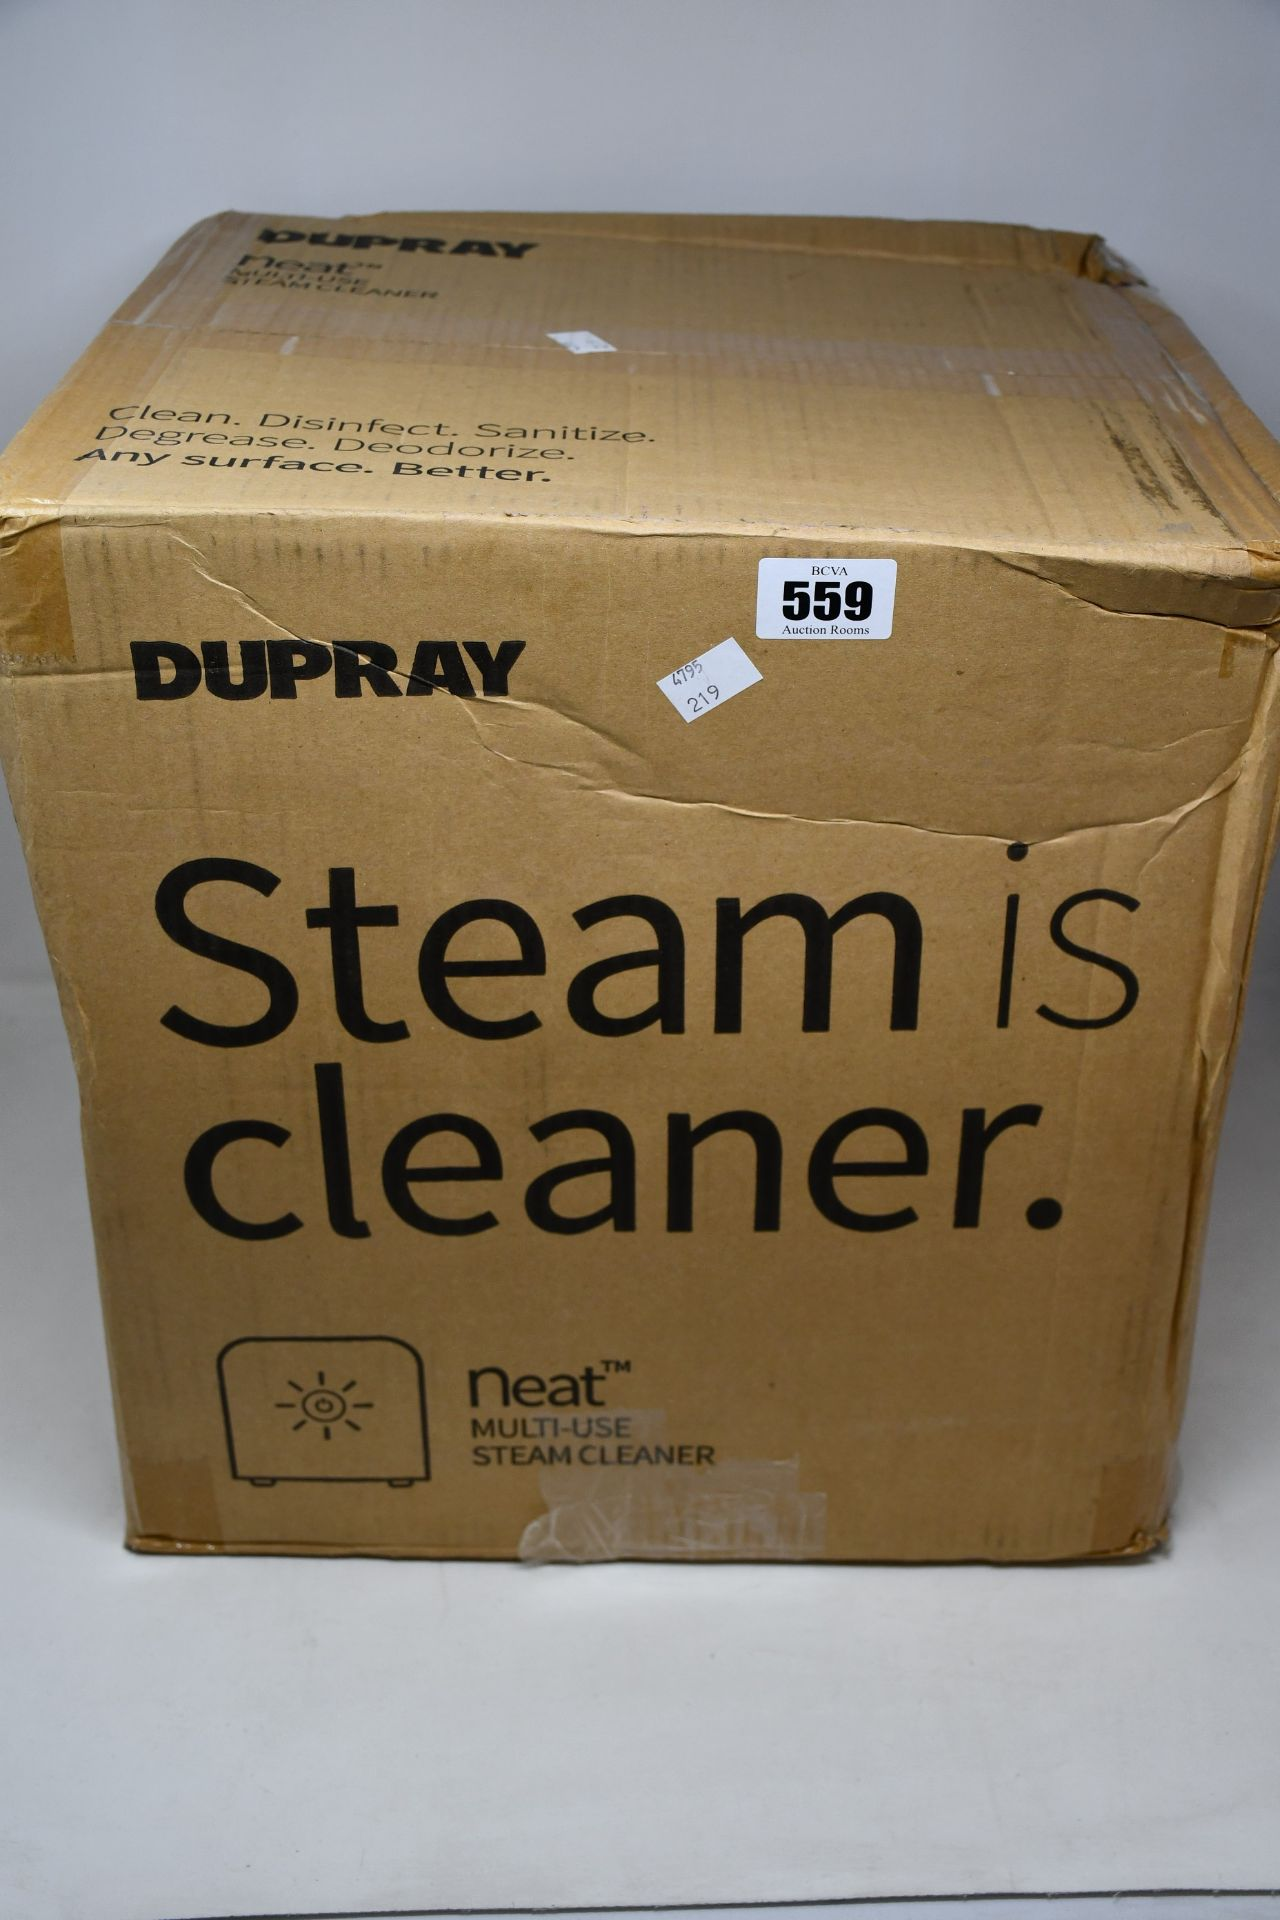 One boxed as new Dupray NEAT Multipurpose Heavy Duty Steamer (Model: DUP020WUK).